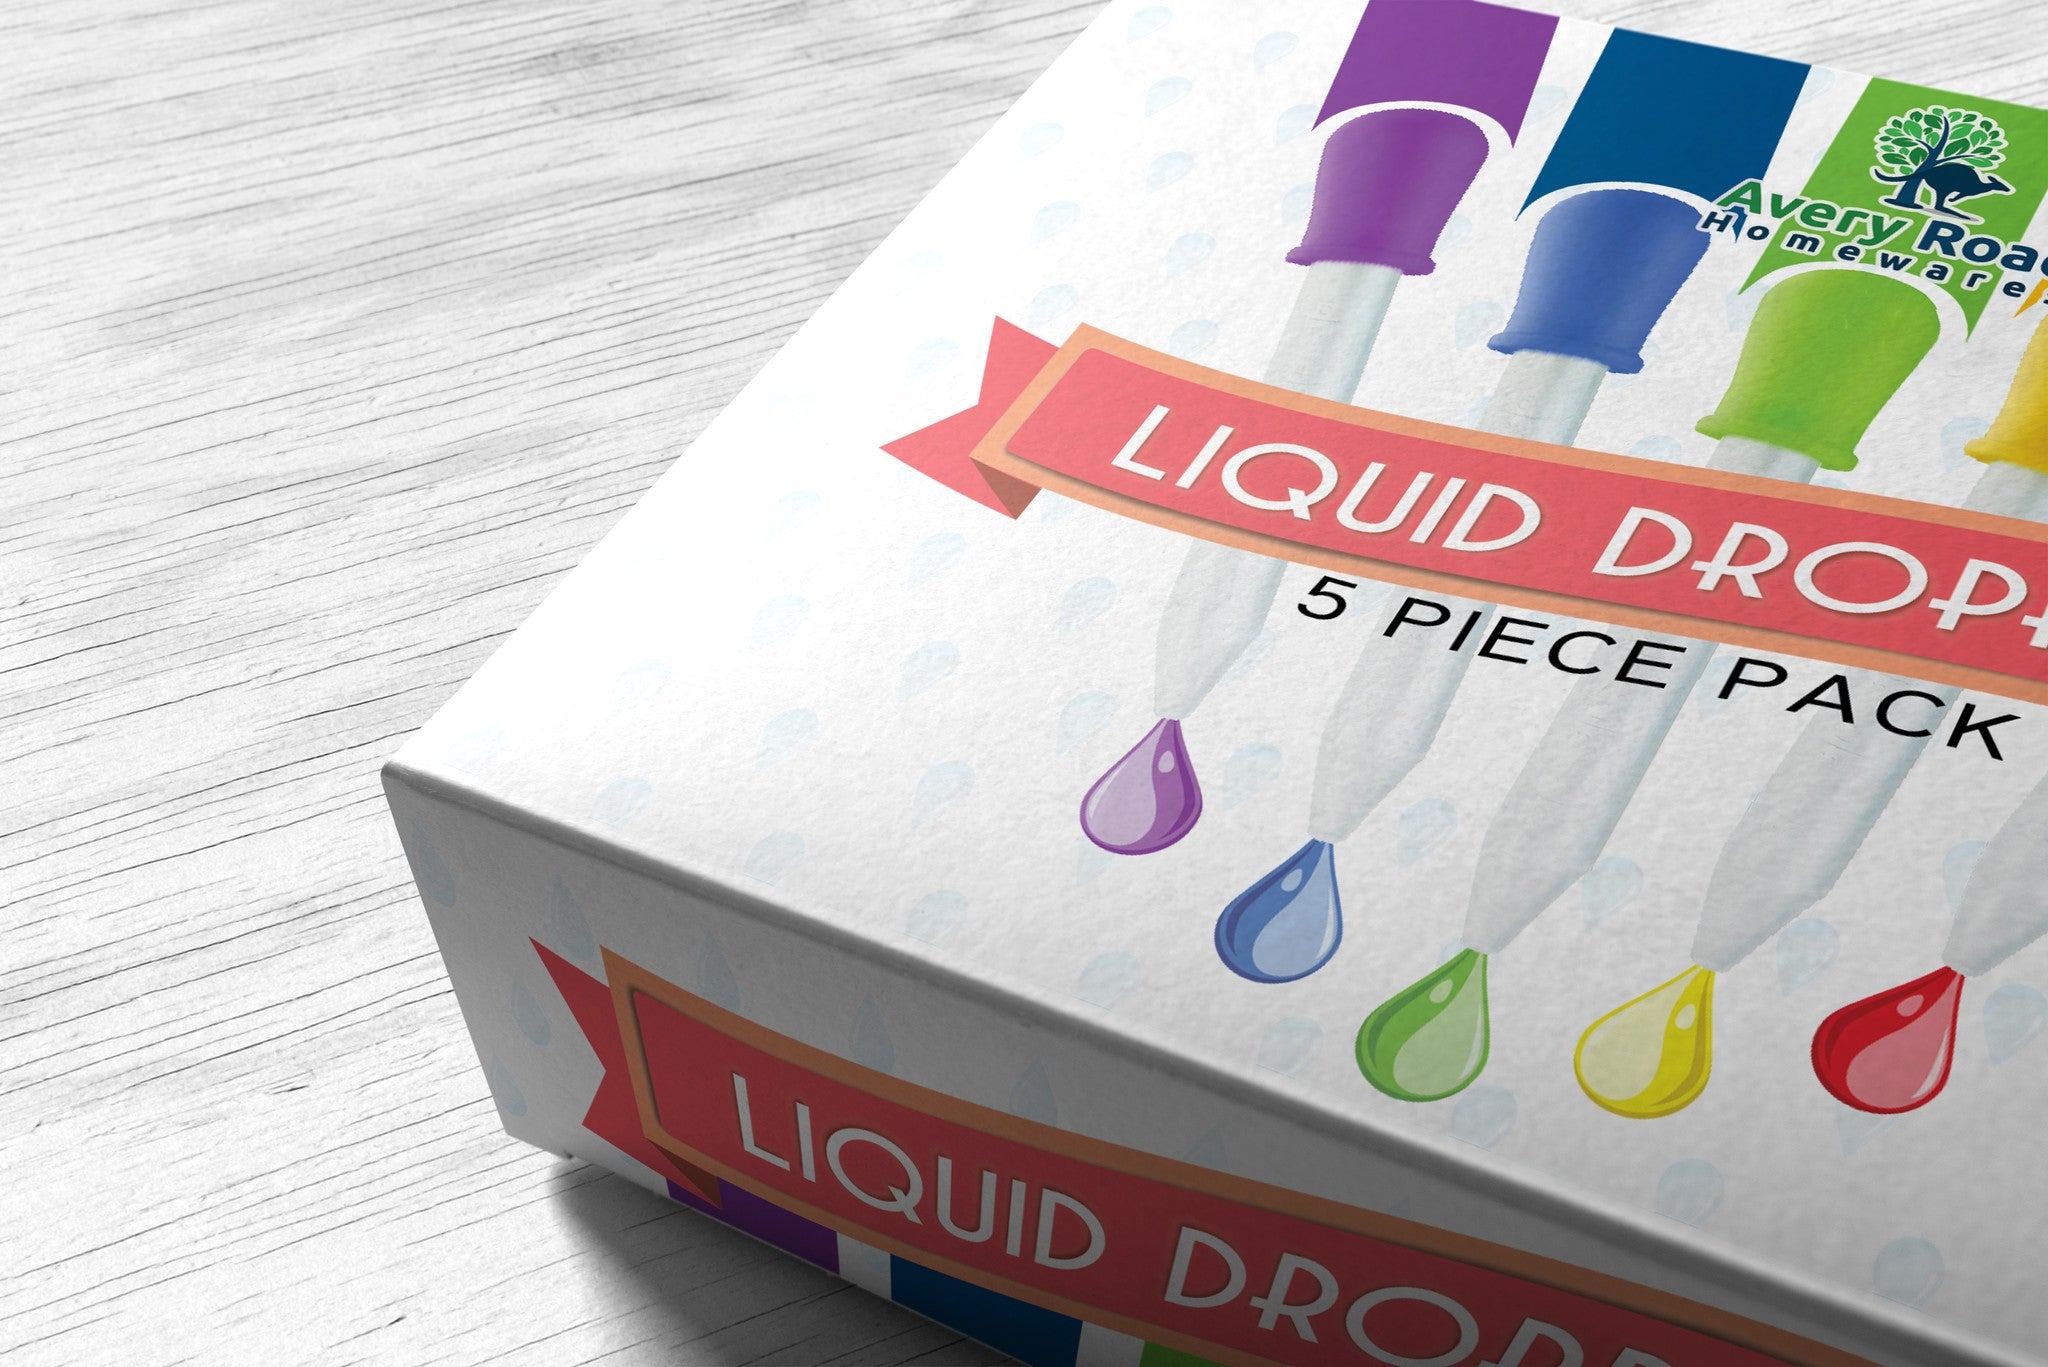 New Liquid DROPPER - 5 x FDA Approved Silicone and Plastic DROPPERS